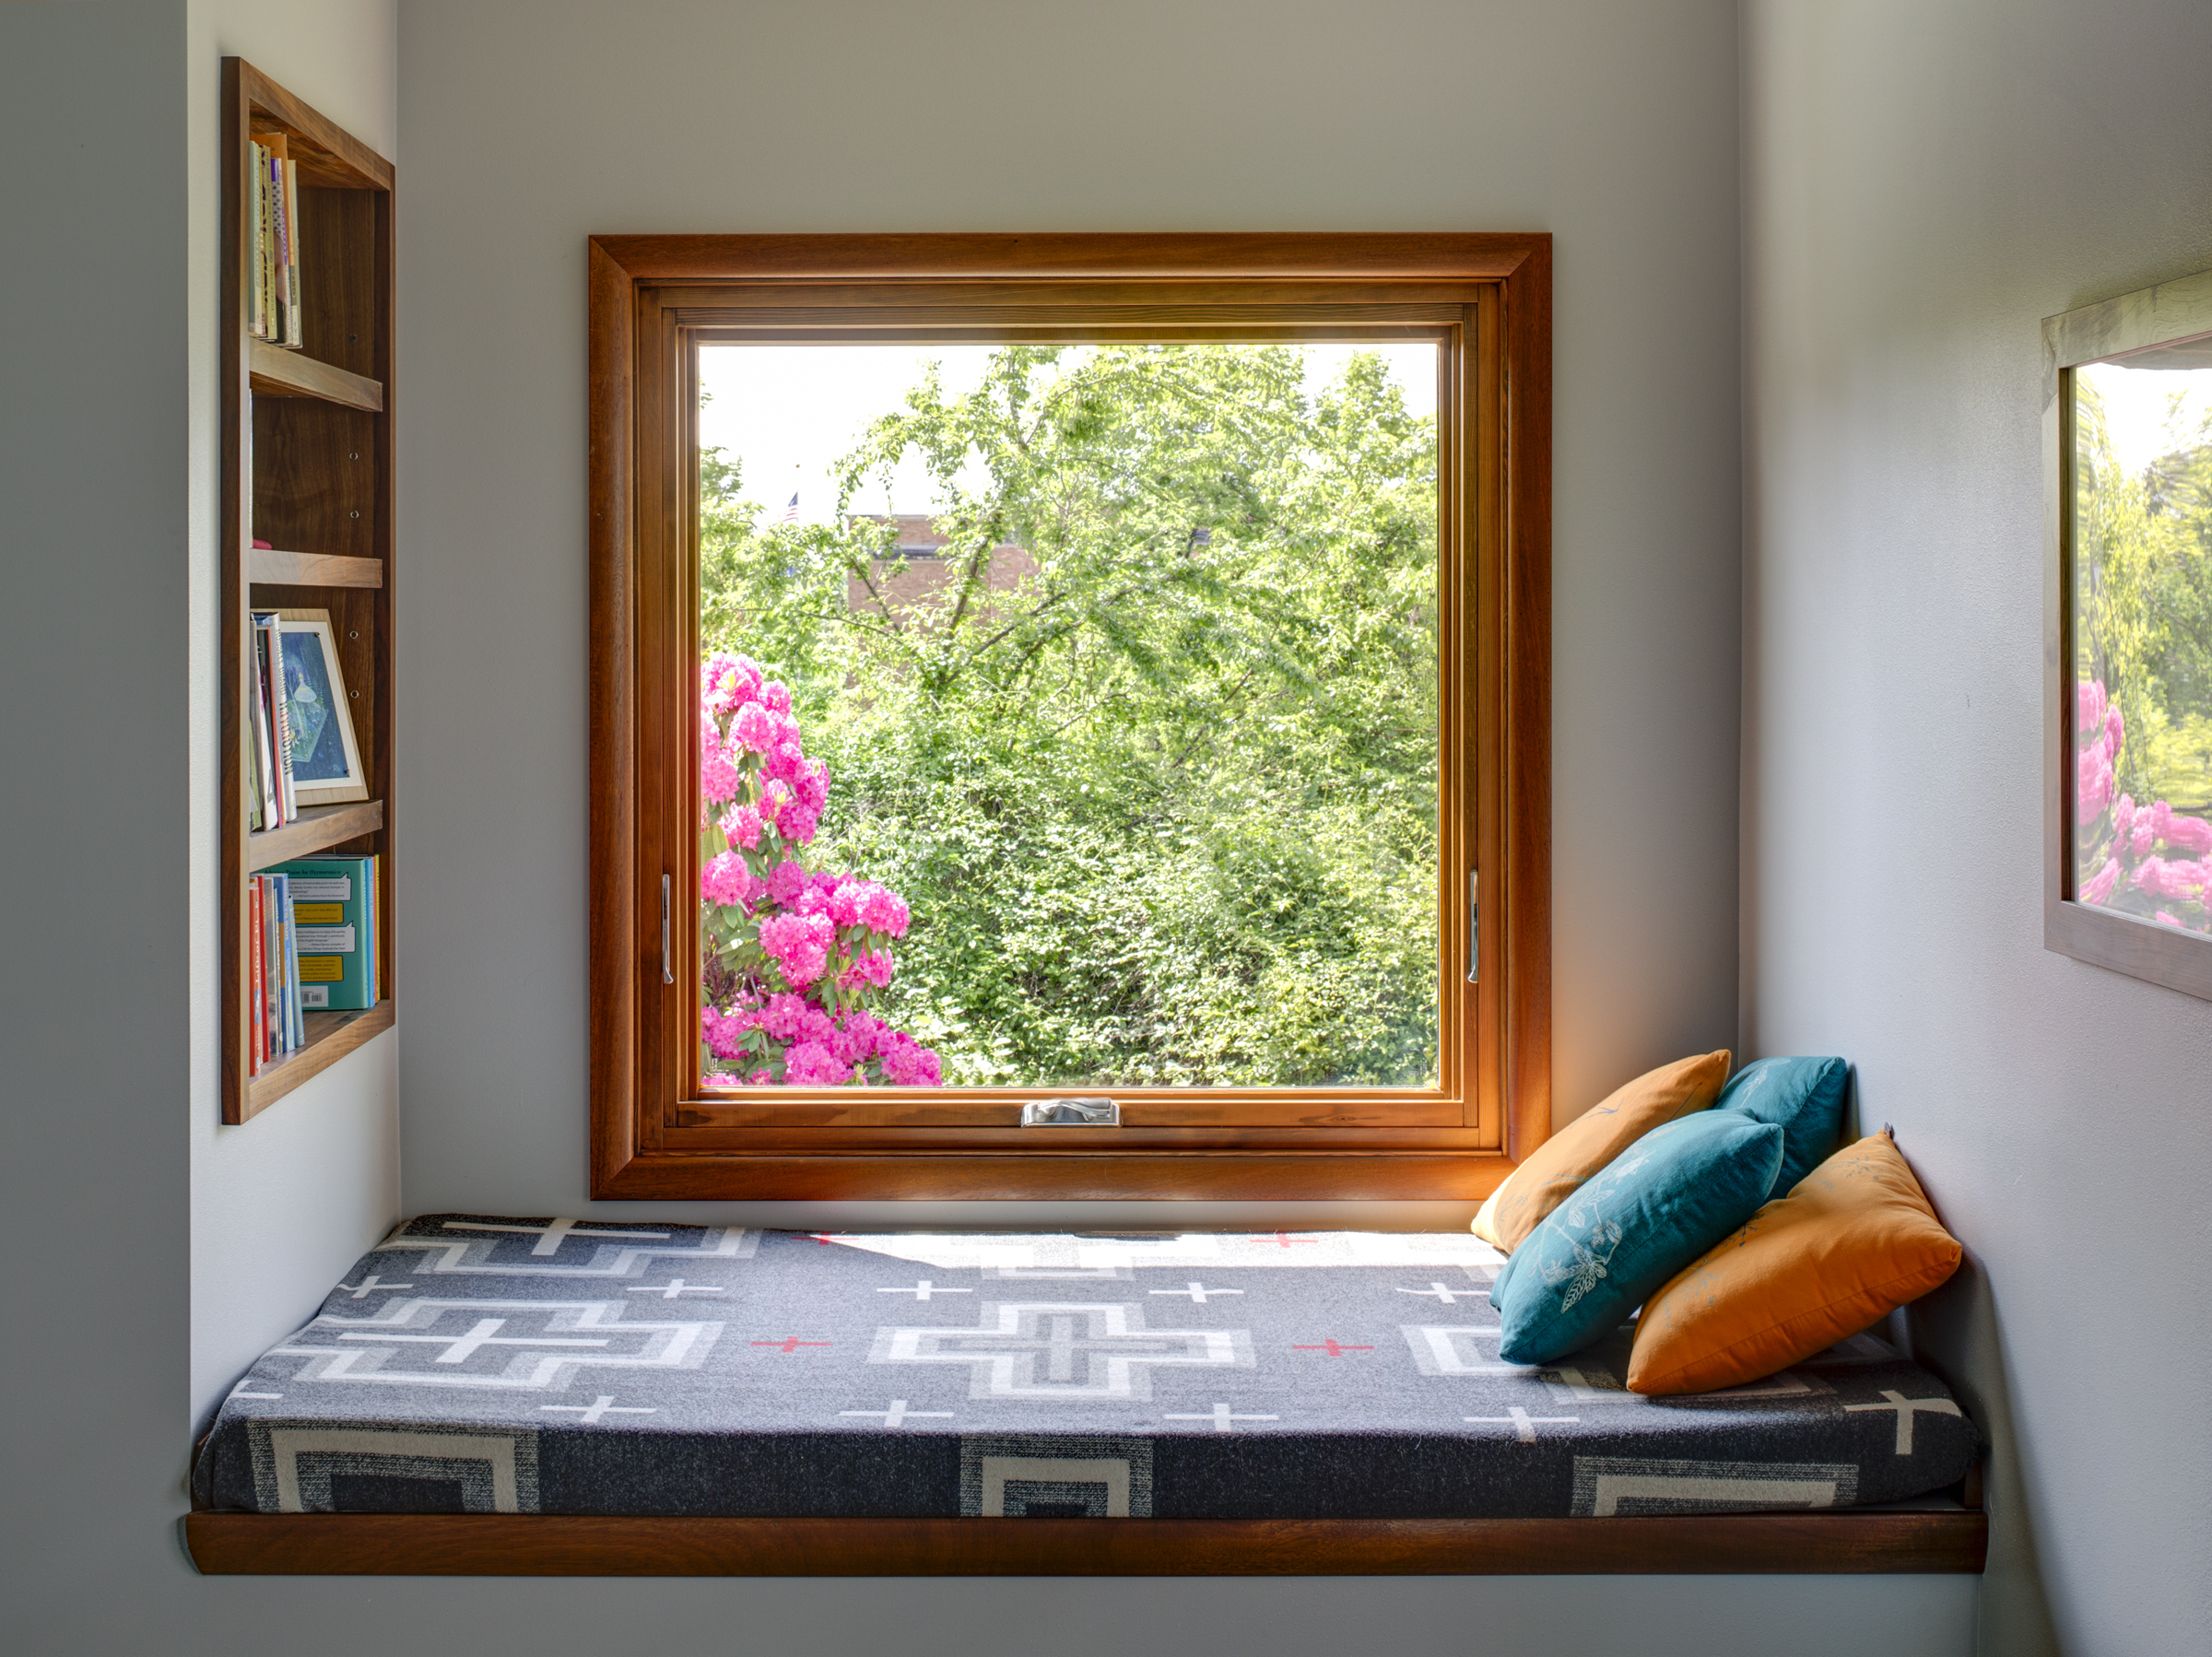 Windowless closet becomes a window seat with a beautiful view